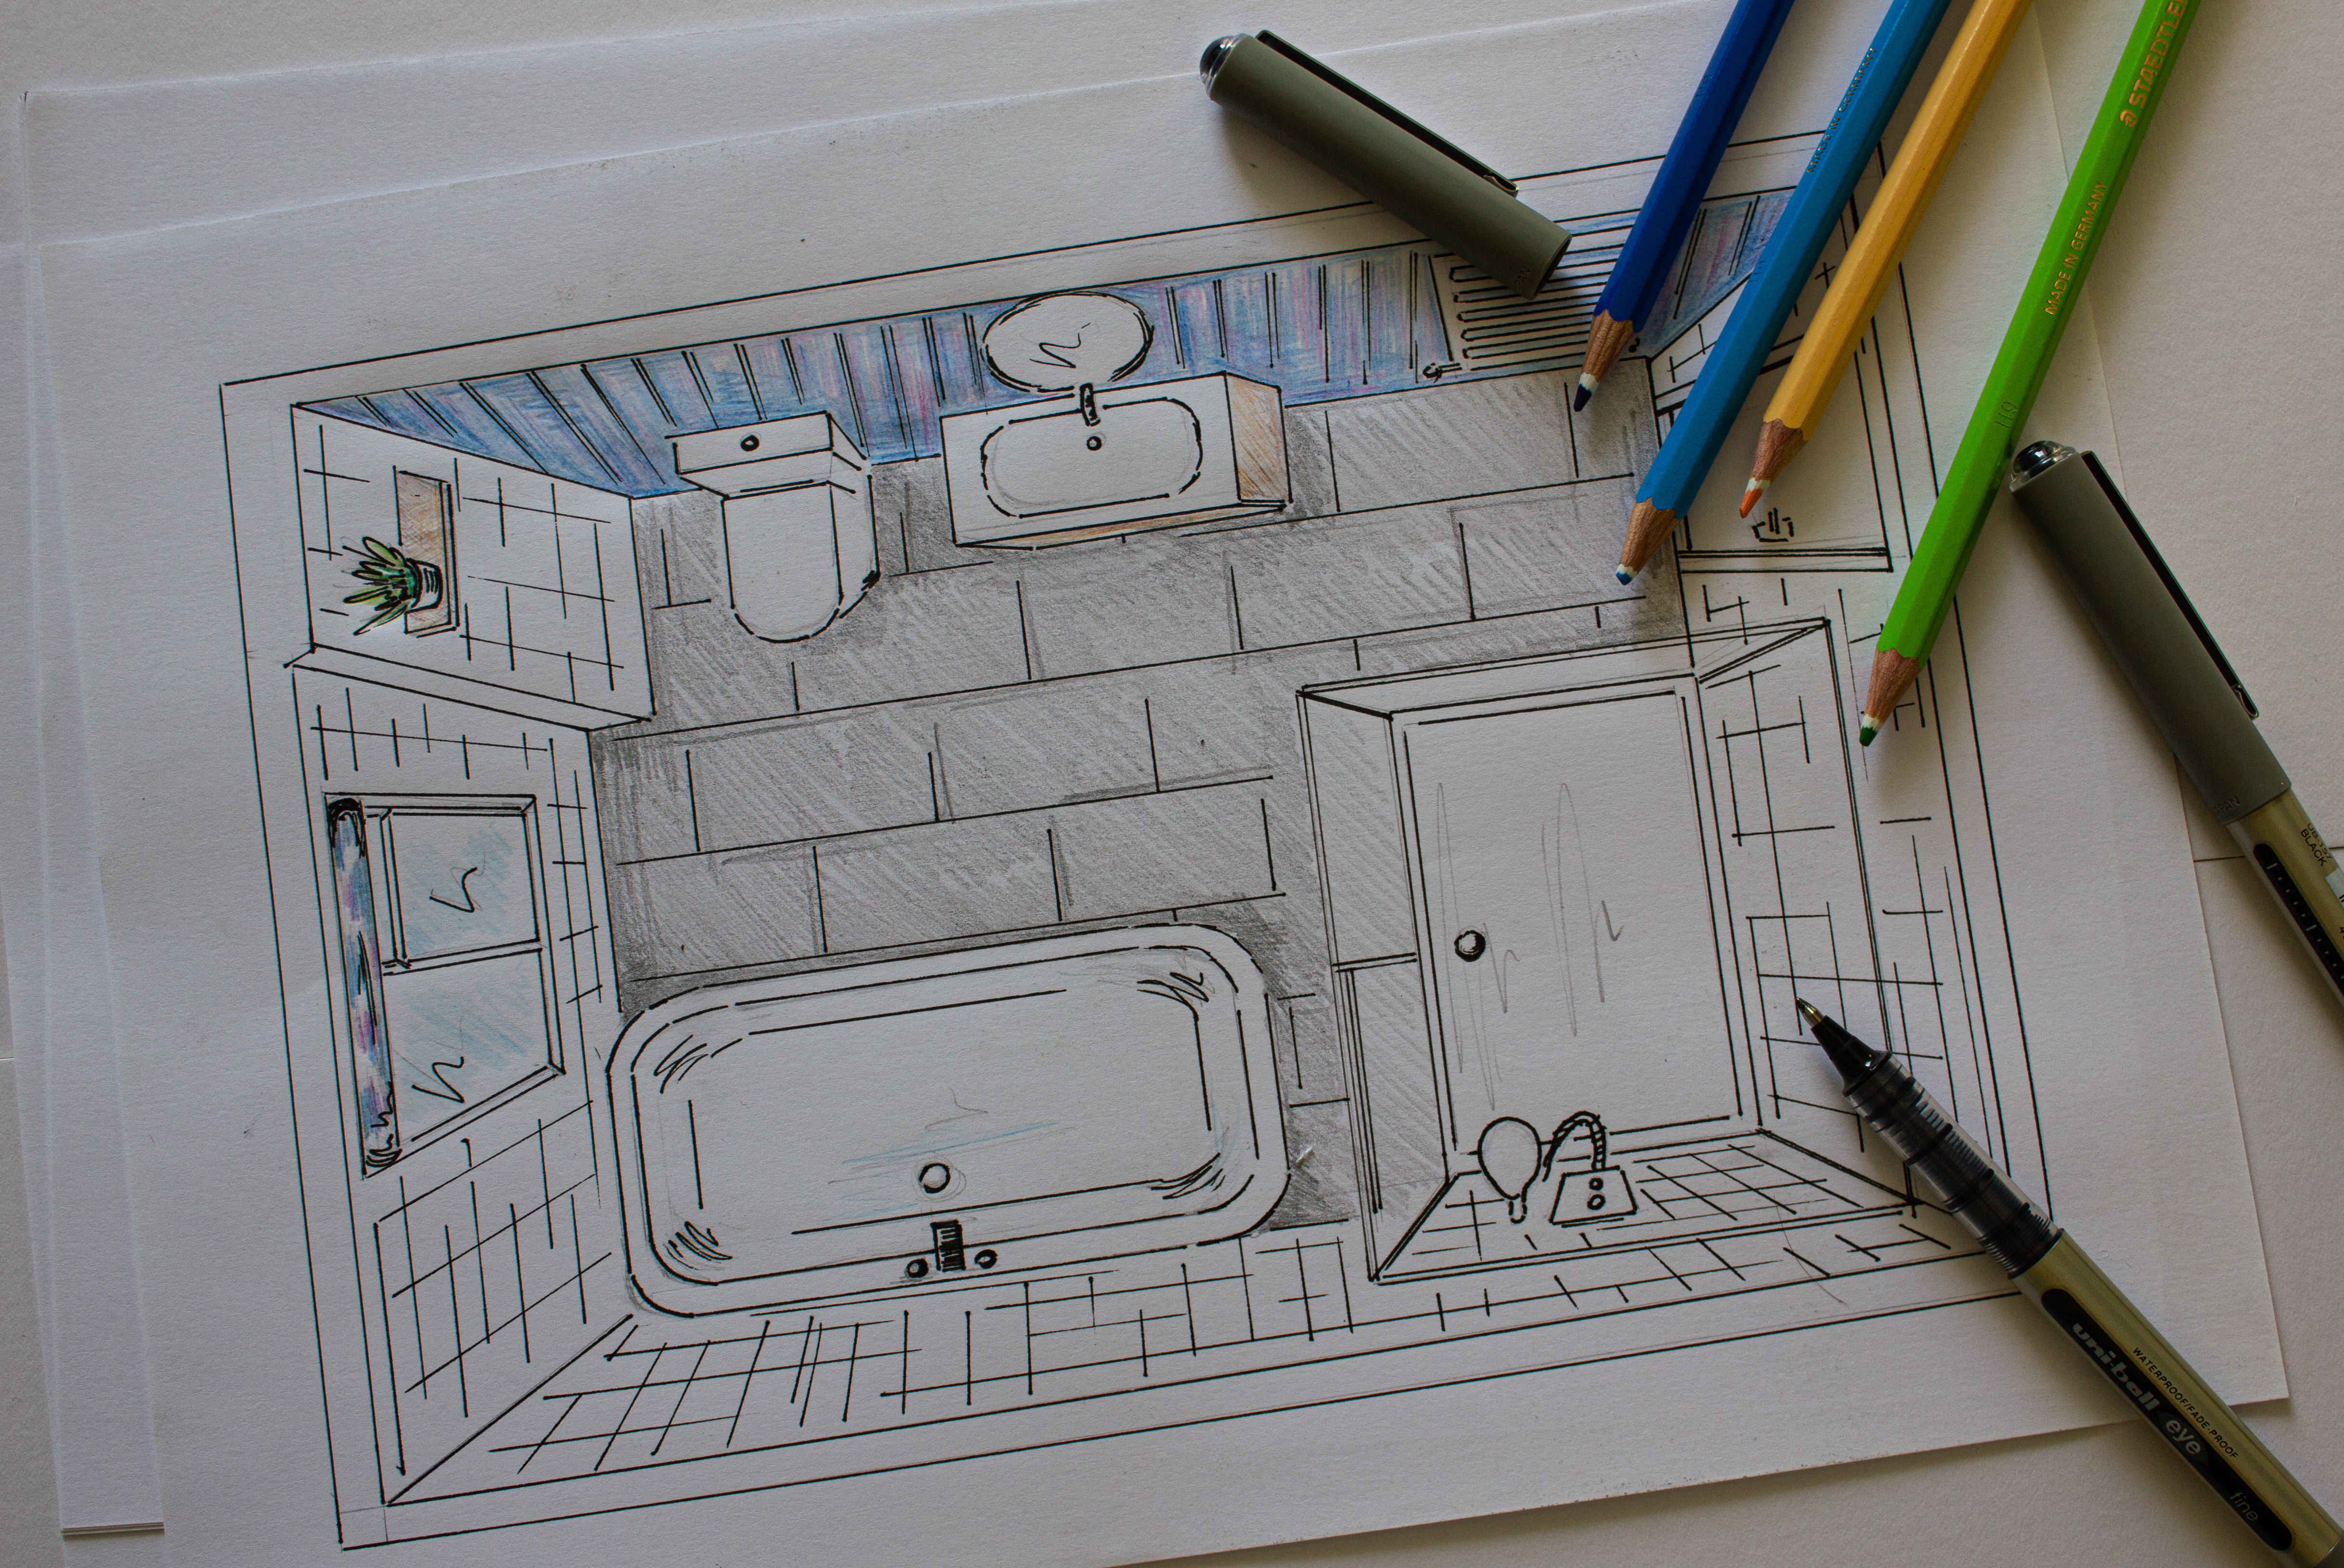 Hand drawn perspective drawing of a bathroom remodel